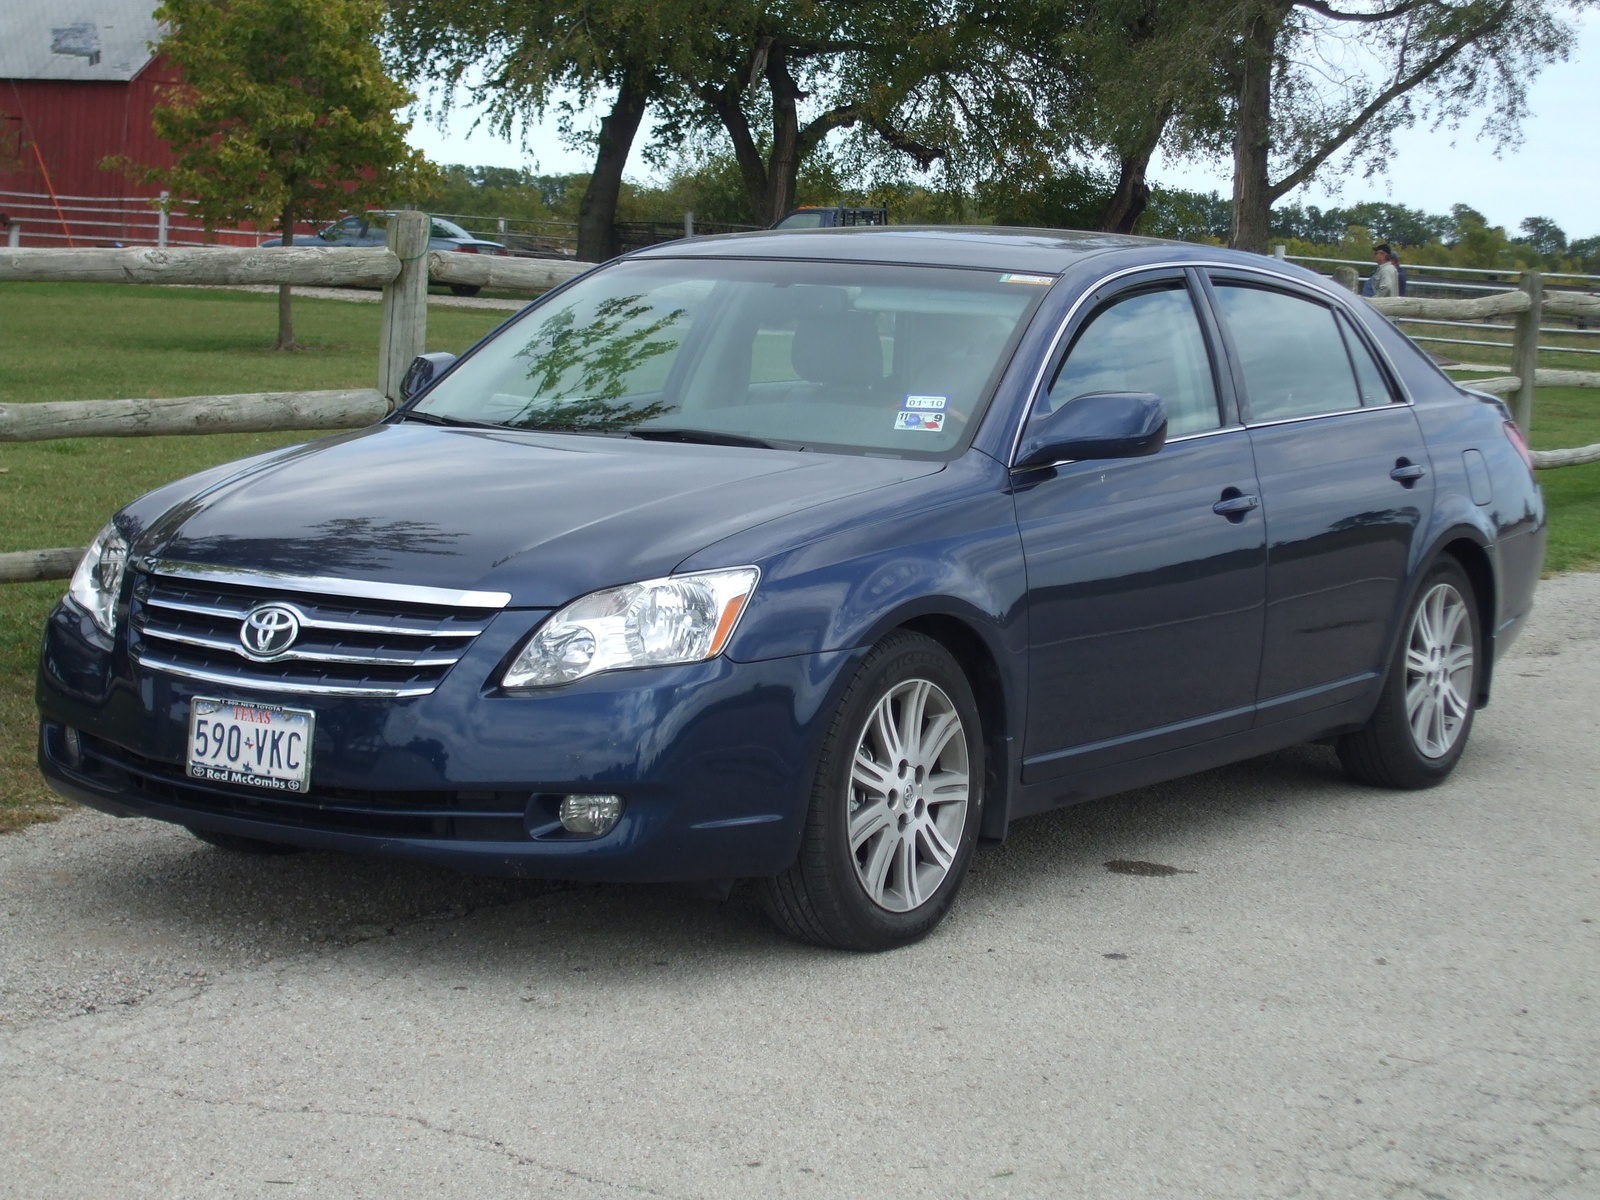 2007 Toyota Avalon Limited picture